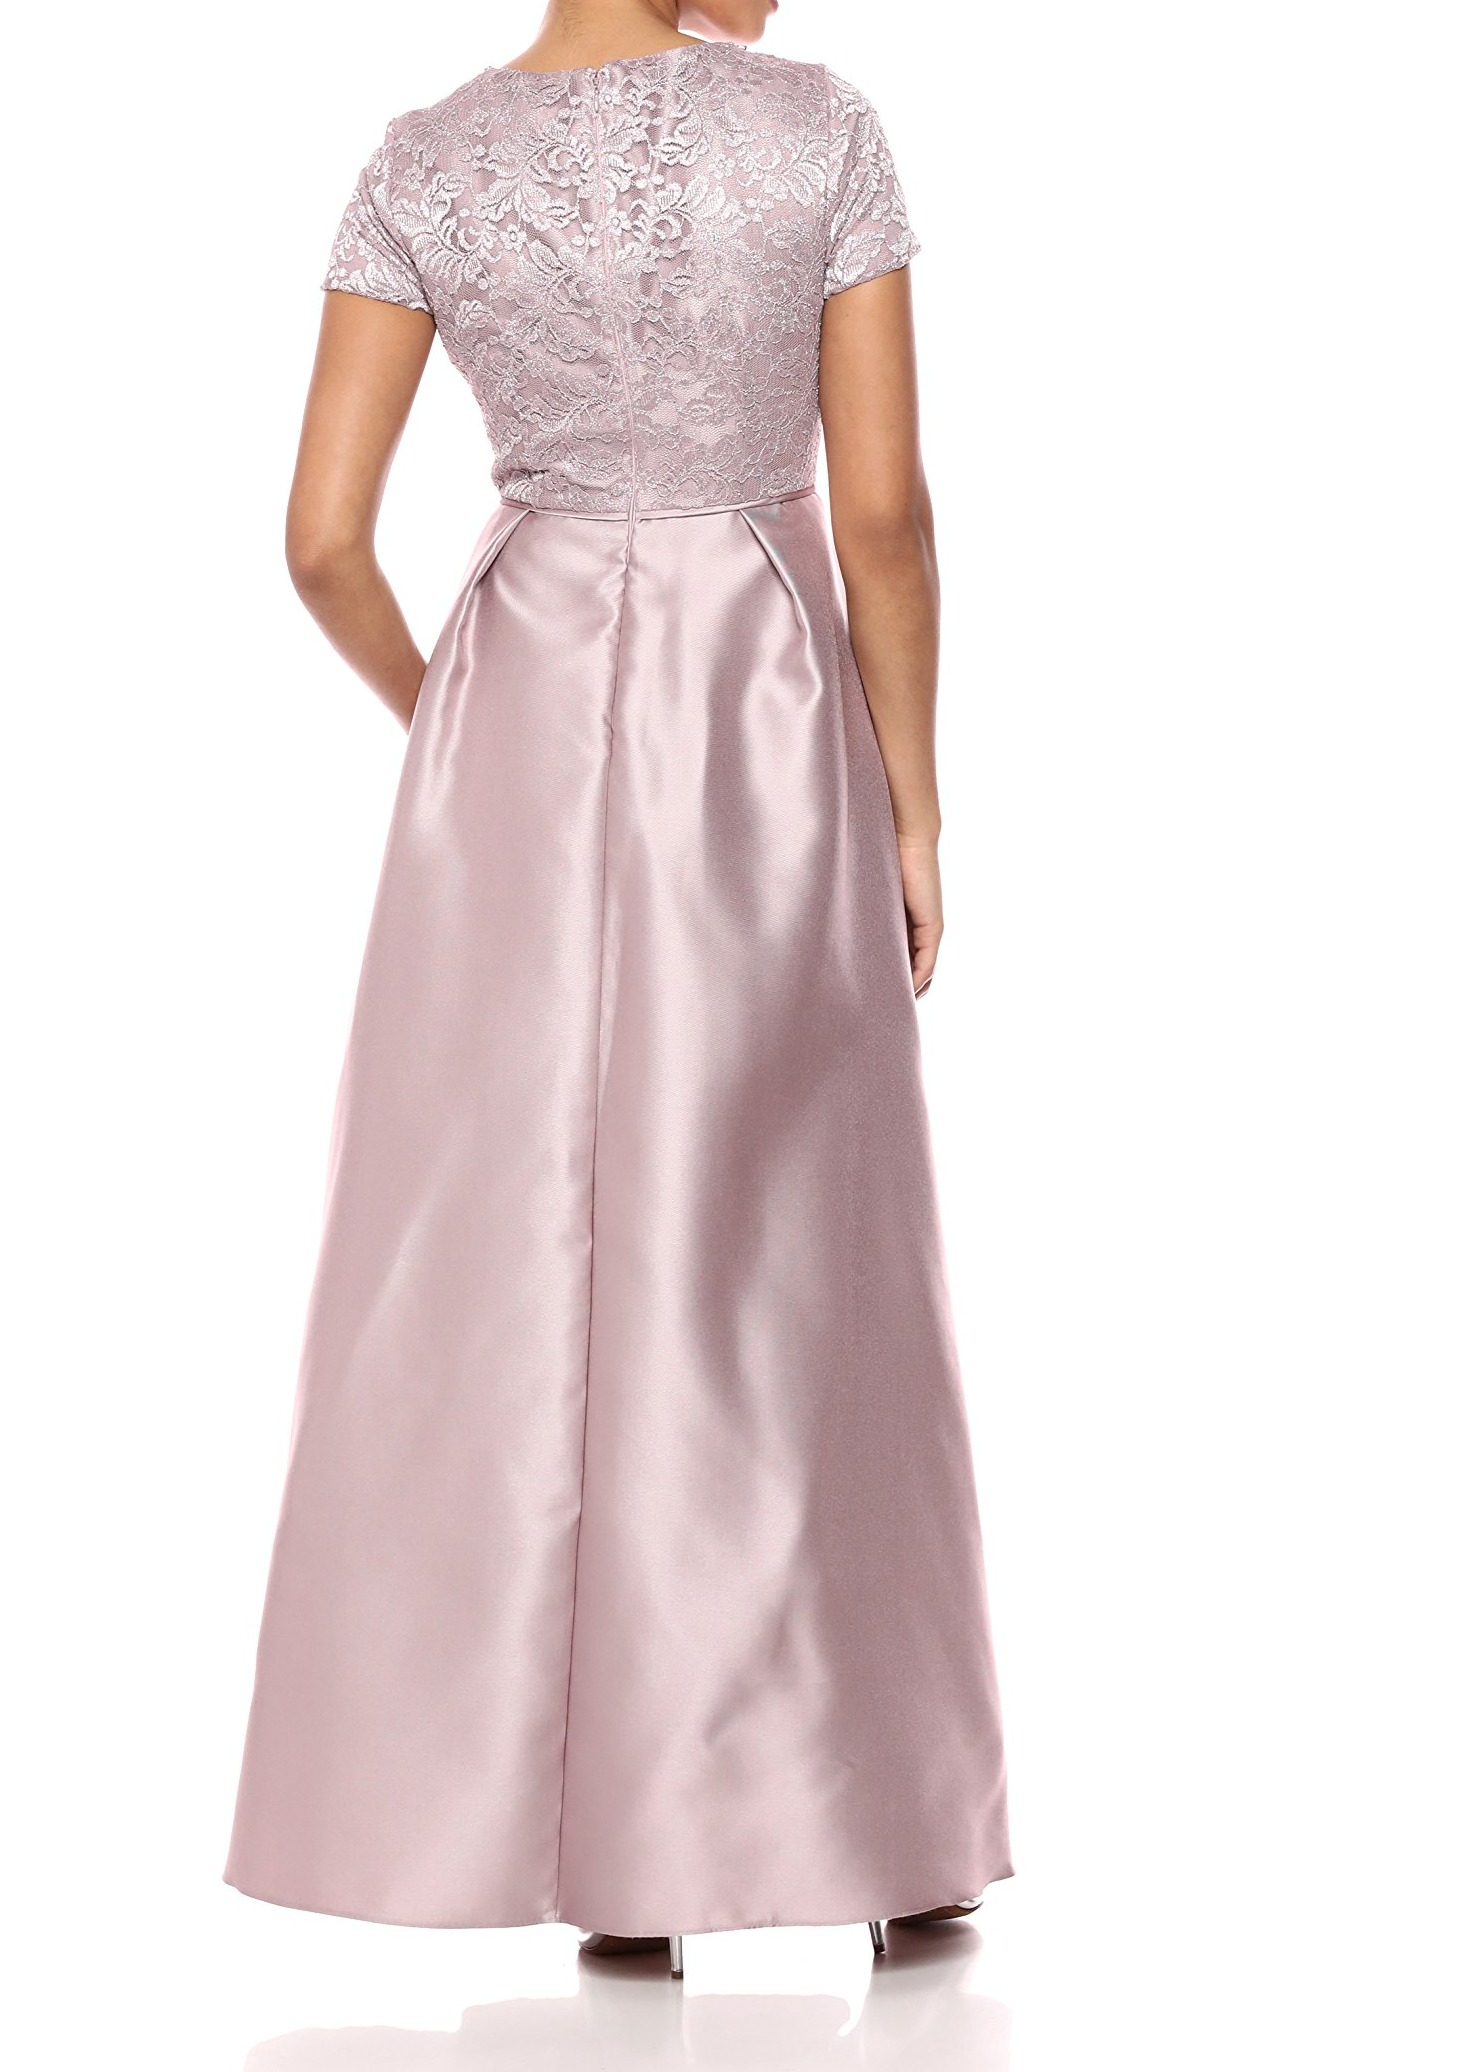 adf8028a34134 We have more Ignite Evenings in Size 10 - Click Here Click to see all Womens  Dresses in Size 10